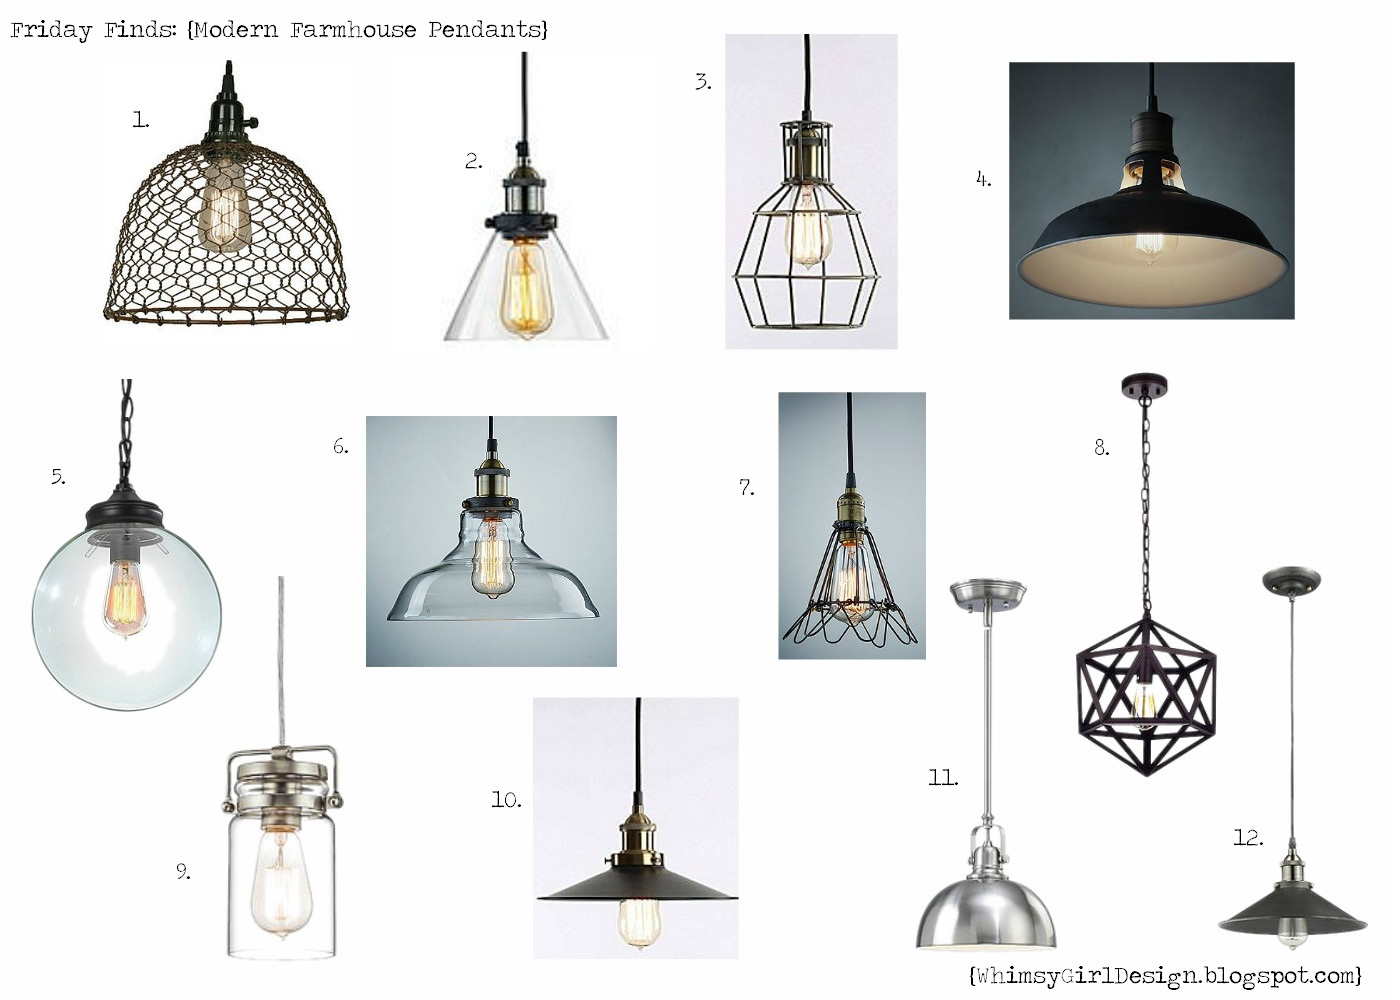 Farmhouse Pendant Lighting Kitchen Whimsy girl friday finds modern farmhouse pendant lights friday finds modern farmhouse pendant lights workwithnaturefo